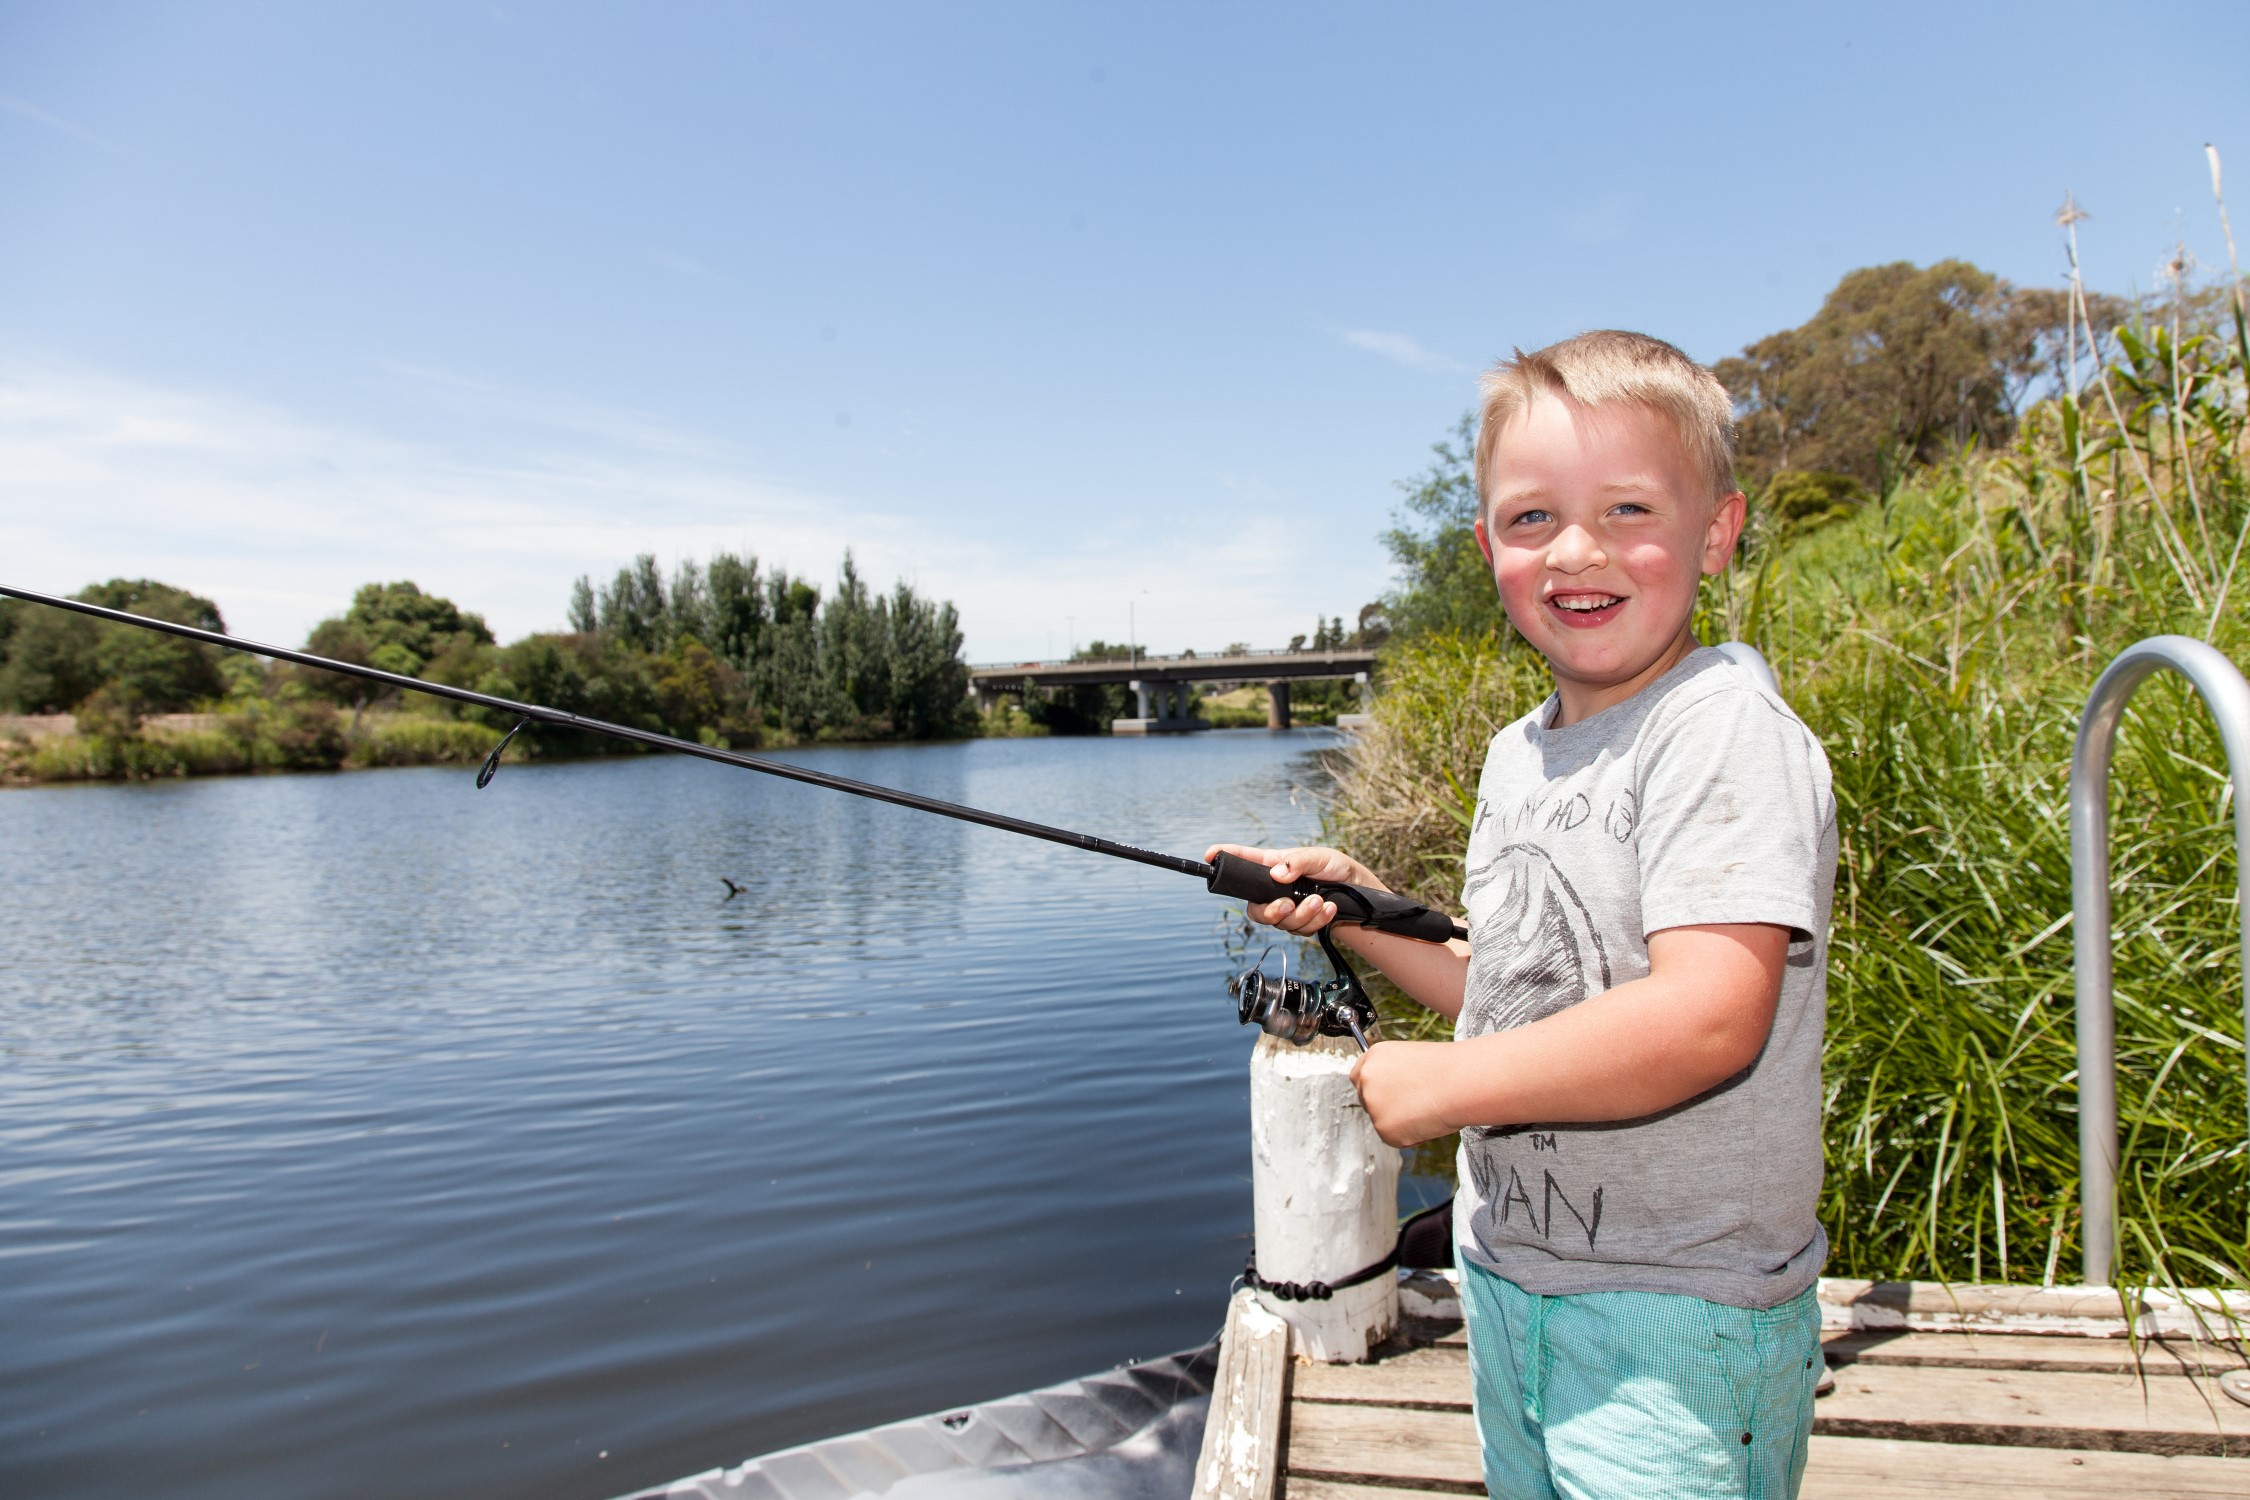 NRMA Bairnsdale Riverside Holiday Park - Bairnsdale photo 5